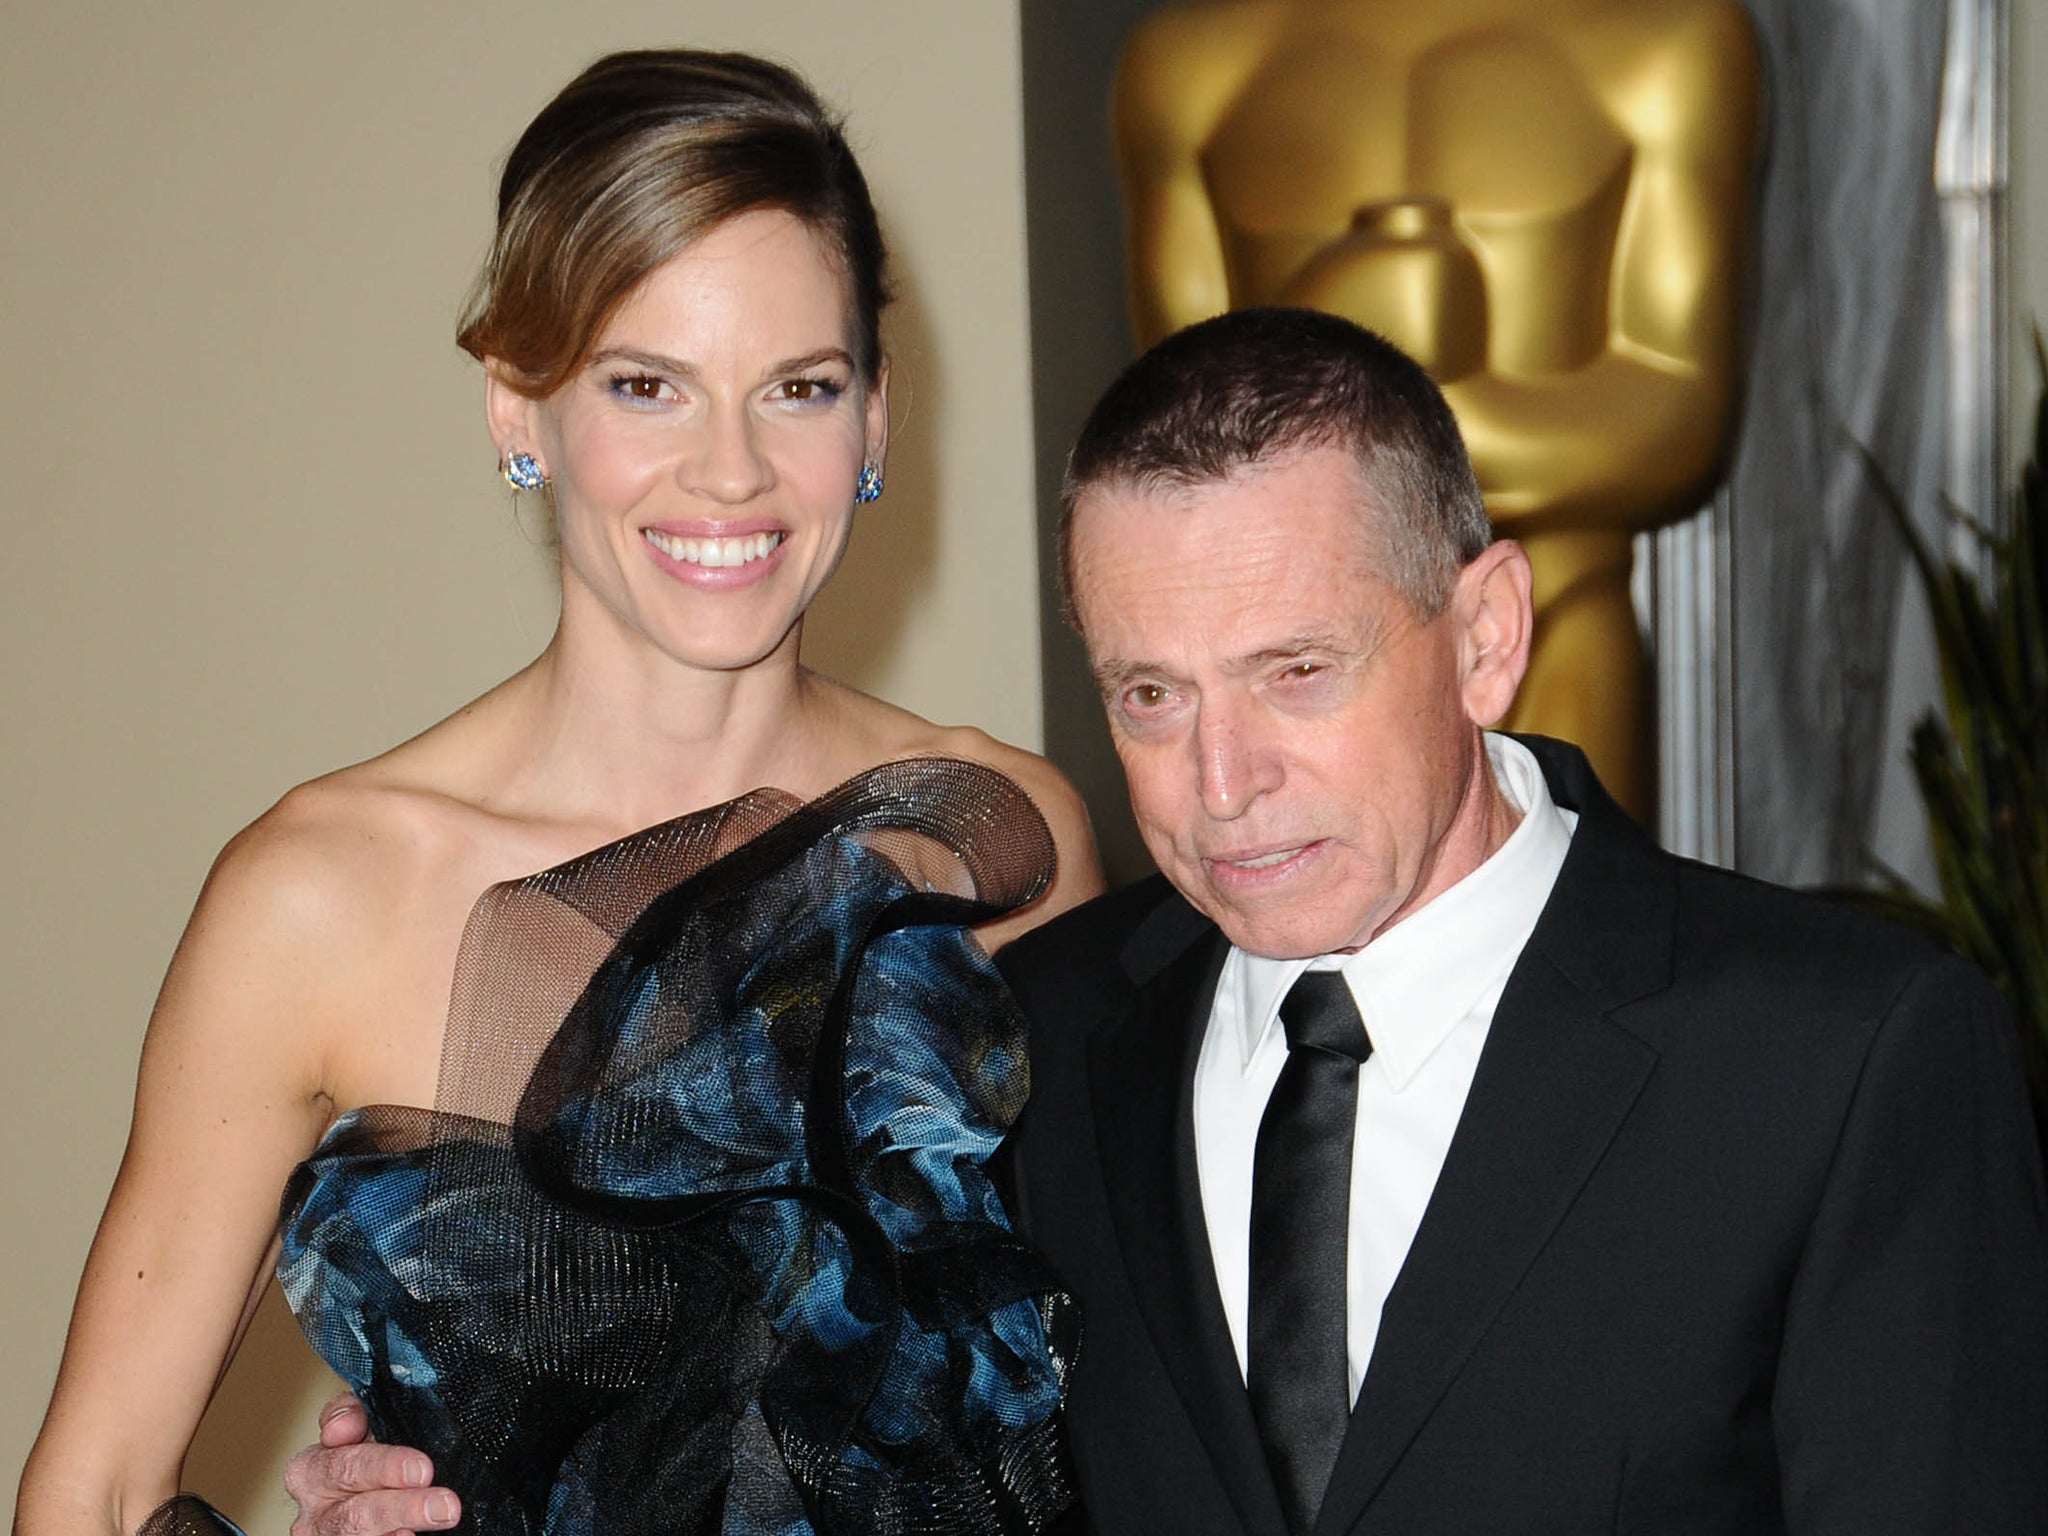 Hilary Swank's pill addiction